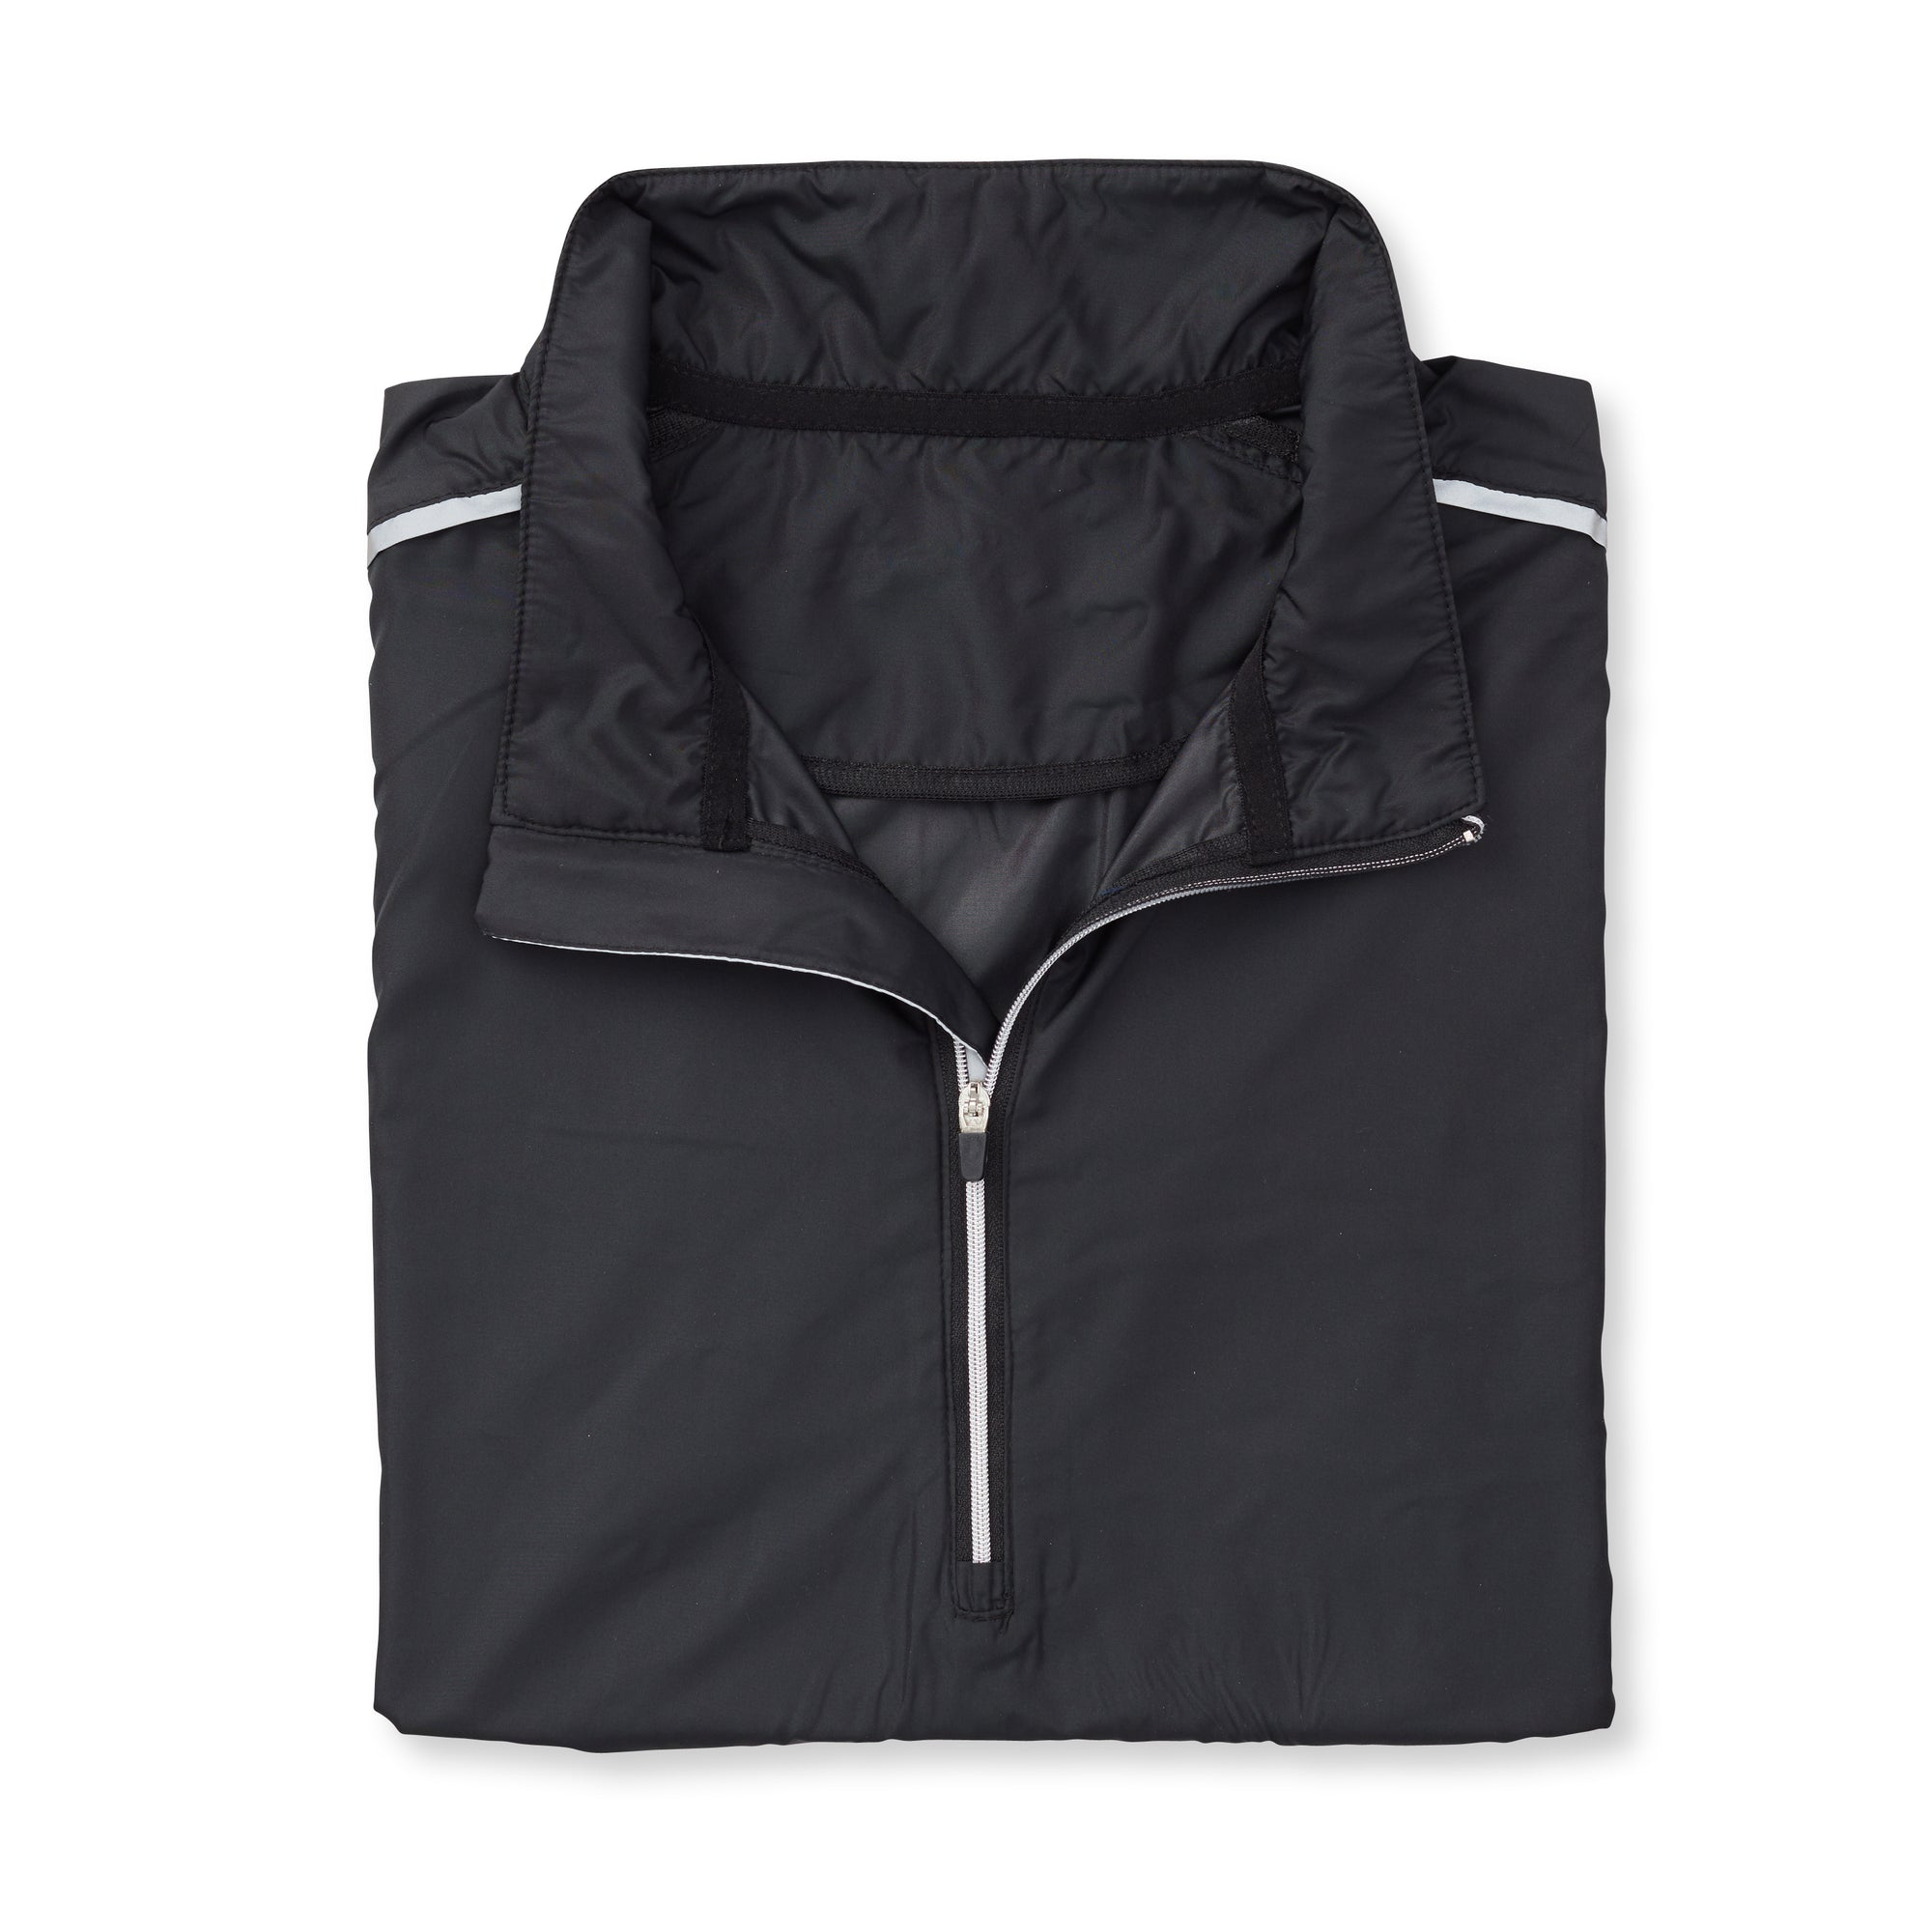 THE AVIATOR HALF ZIP TEC WINDWEAR - Black